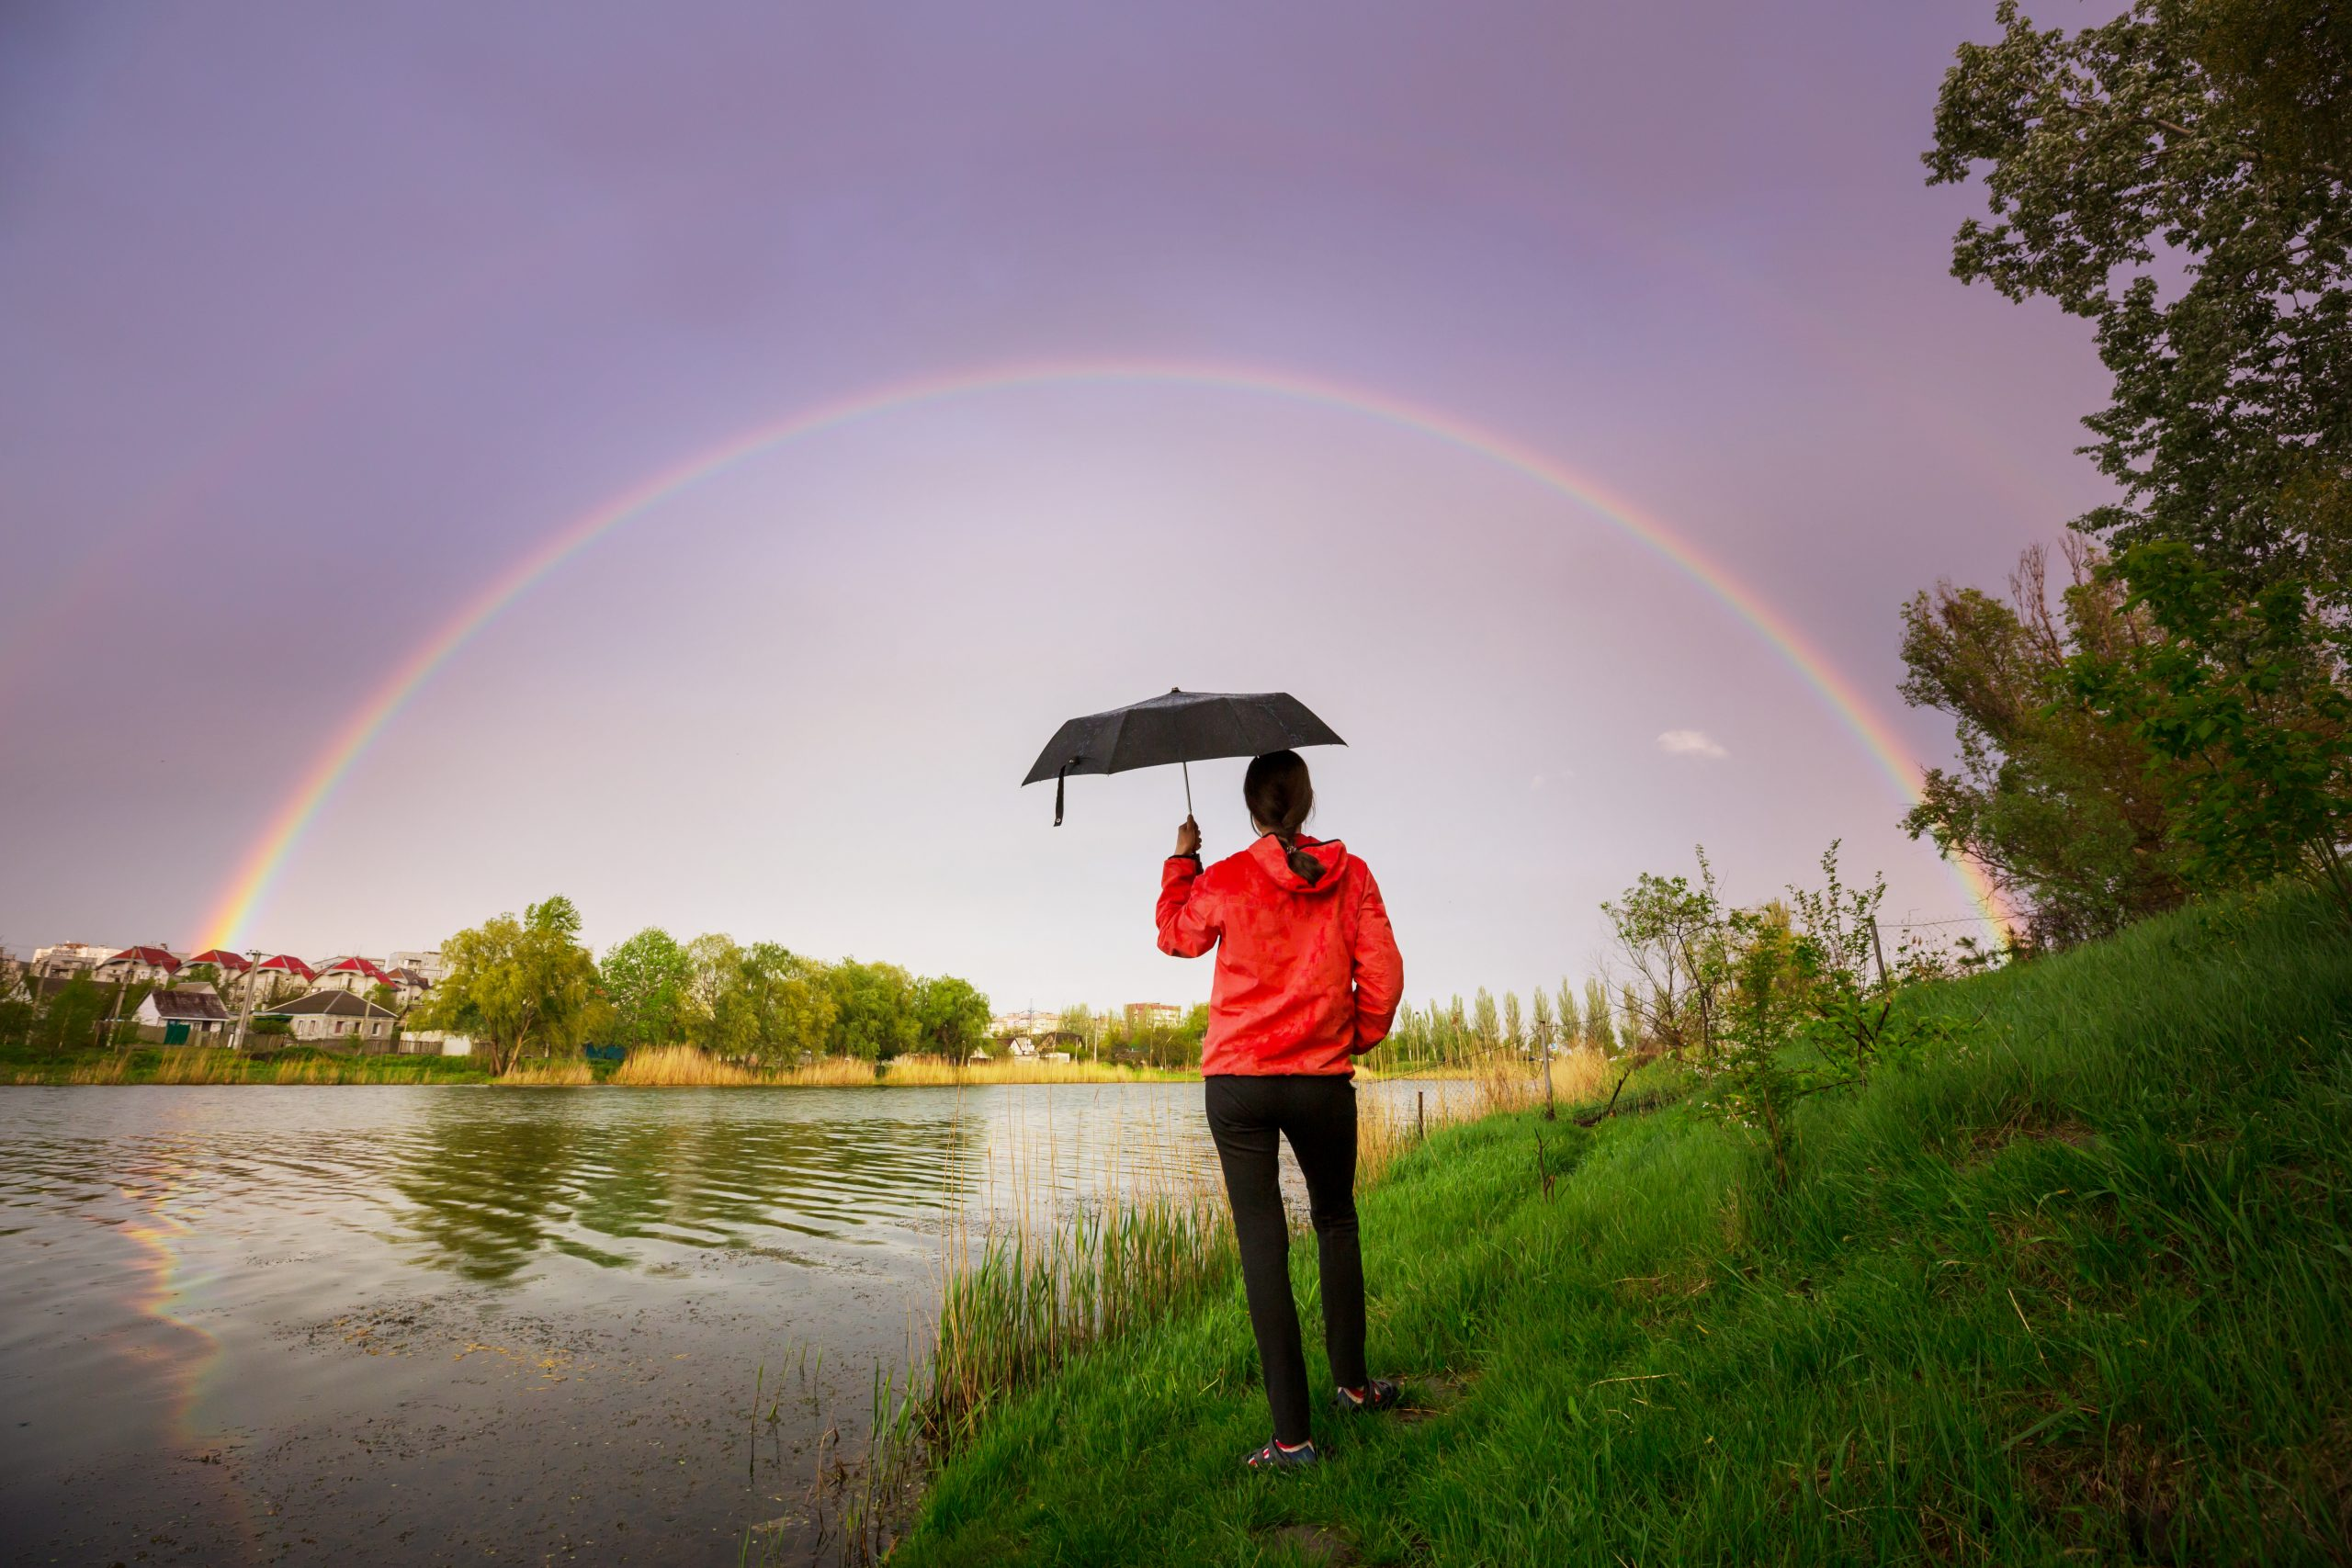 Lady standing with umbrella by a river with rainbow in the distance